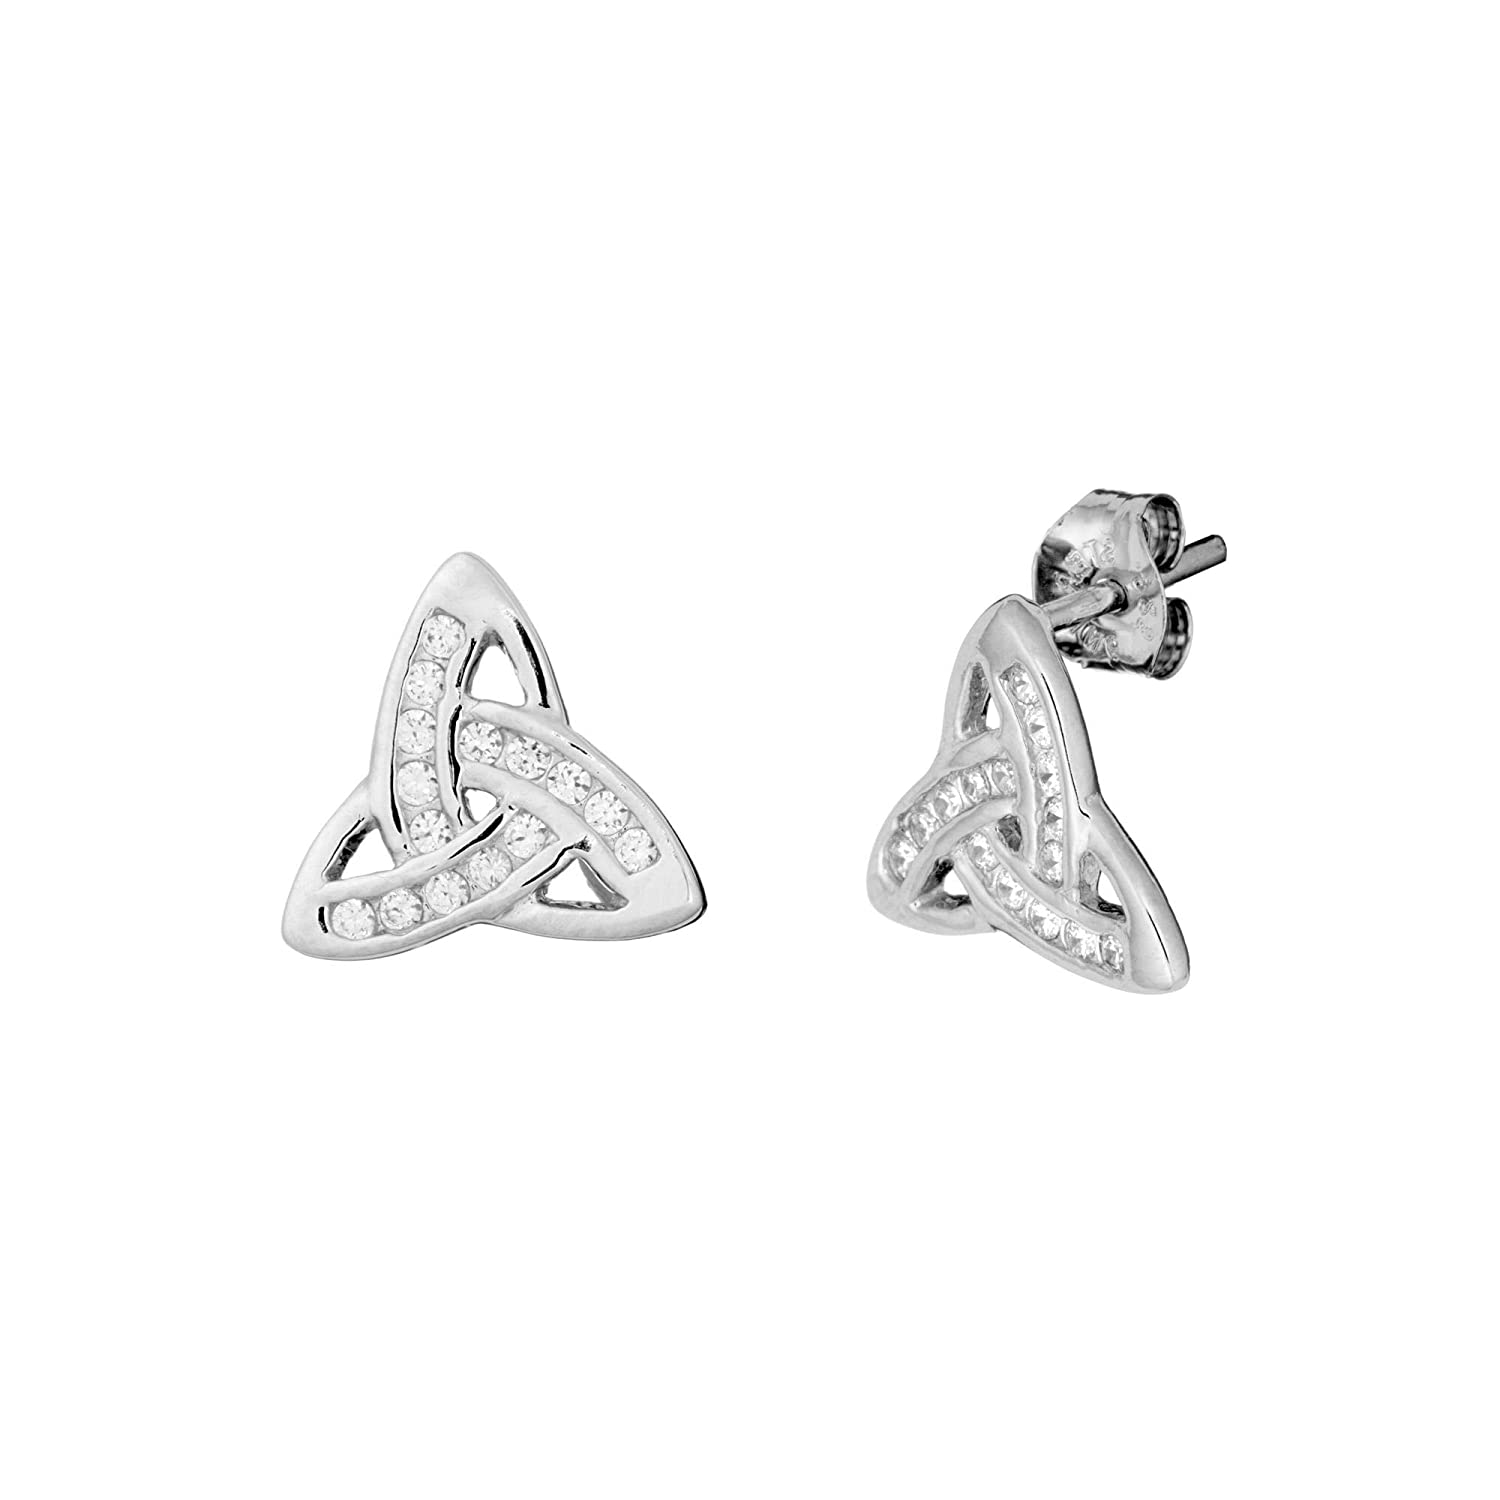 Nickel Free 925 Sterling Silver Crystal Celtic Trinity Knot Stud Earrings 1823 Choose Your Color!